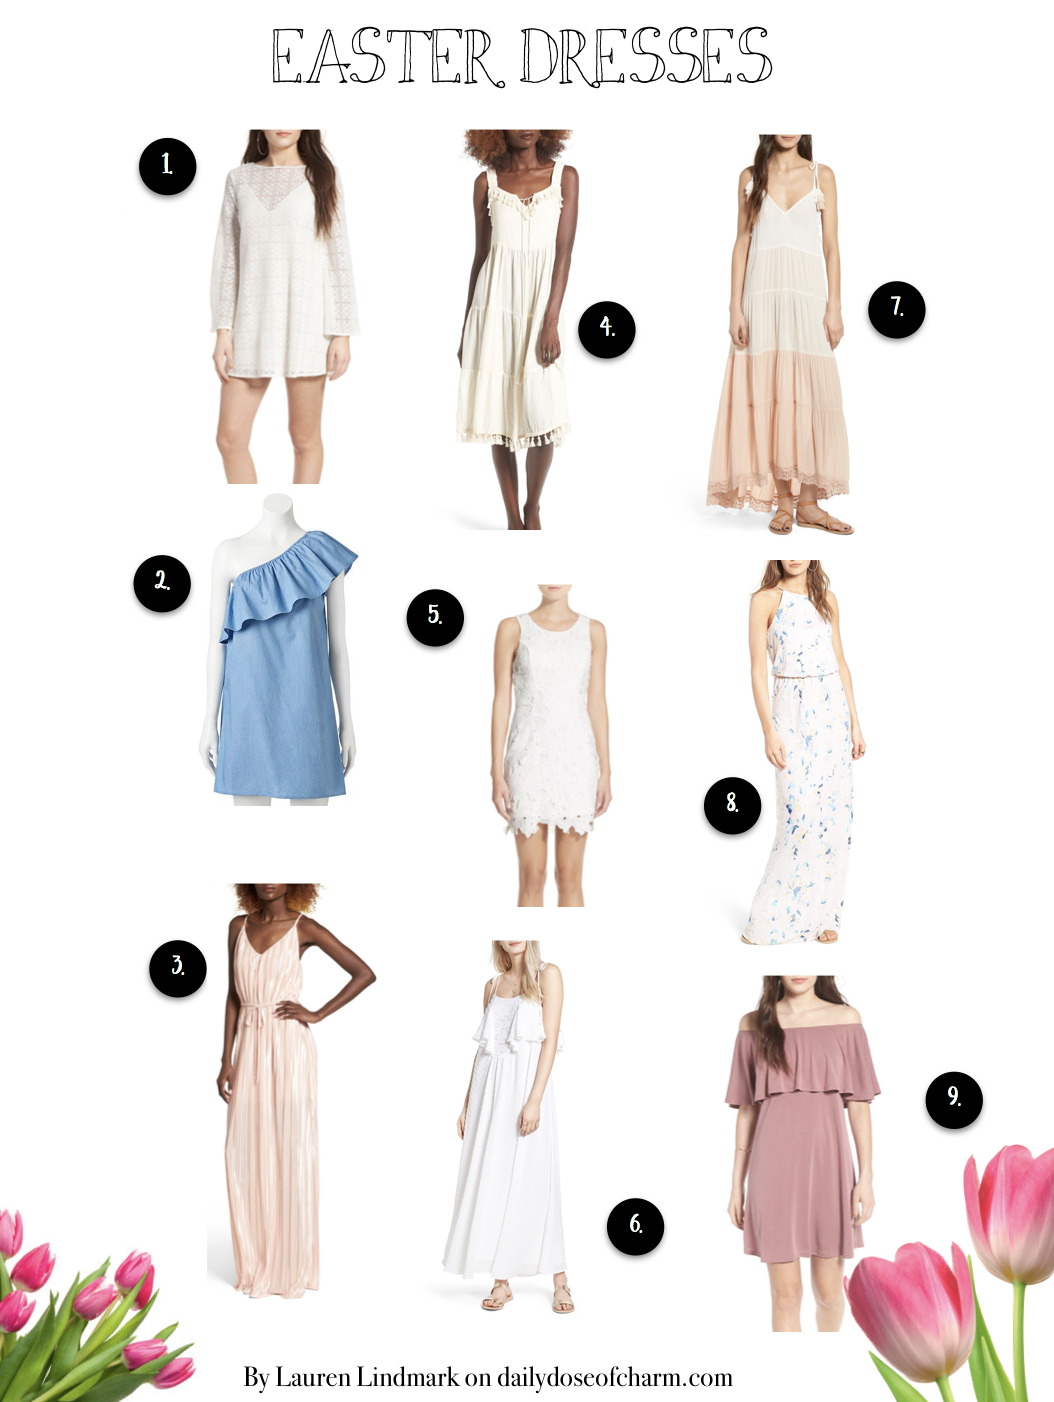 Easter dresses and top that are perfect for all of spring! Check out the fashion blog Daily Dose of Charm by Lauren Lindmark on dailydoseofcharm.com for Spring Easter dresses and tops!